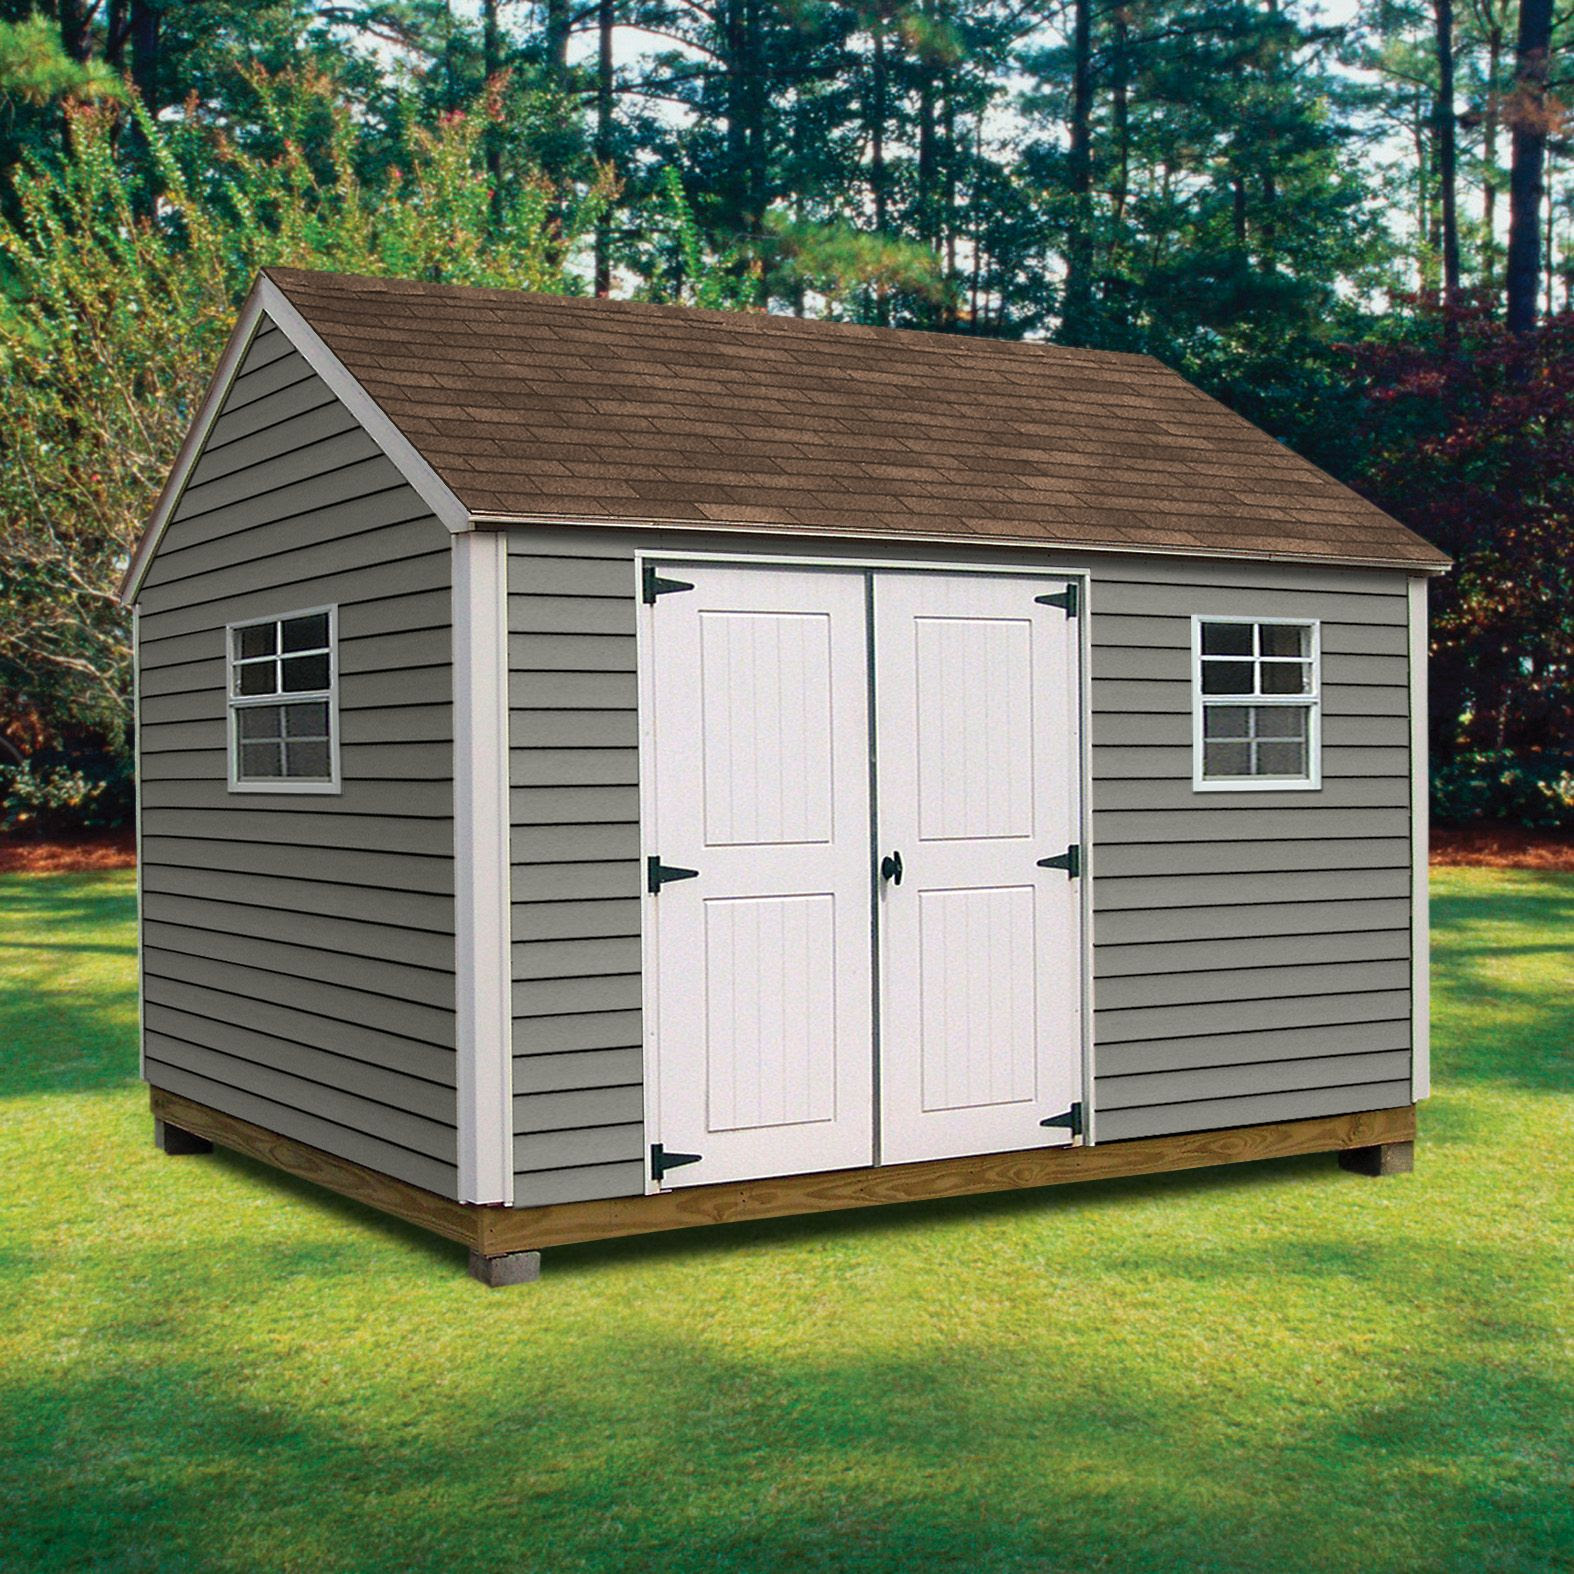 shapely ideas outdoor famed home sheds tall roughneck decorating astonishing rubbermaid small dk to shed storage gable thrifty